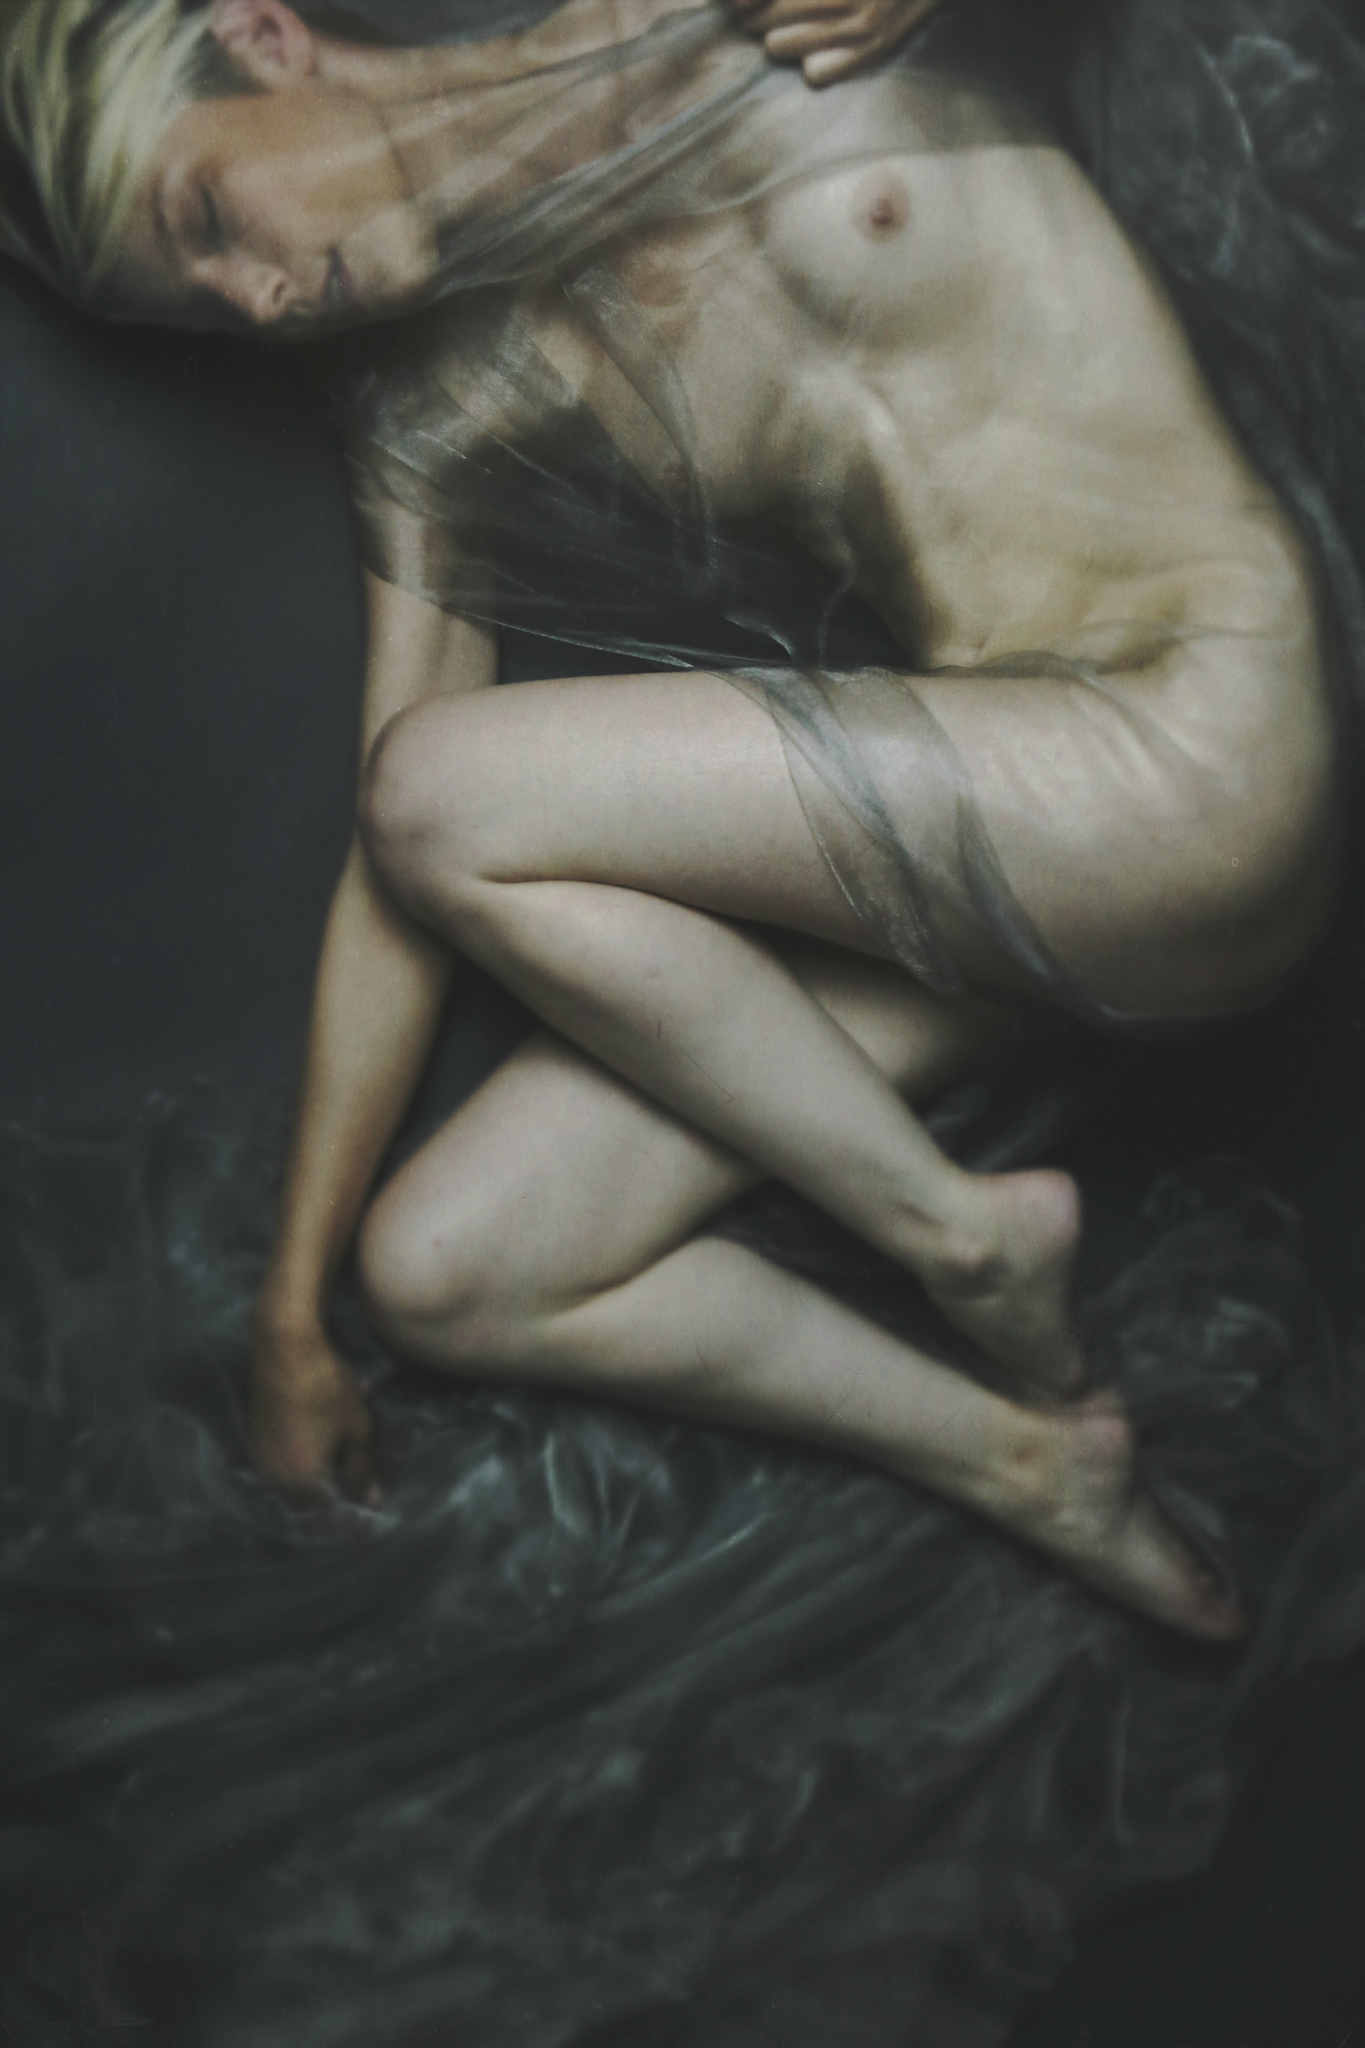 Josephine Cardin - In This Twilight